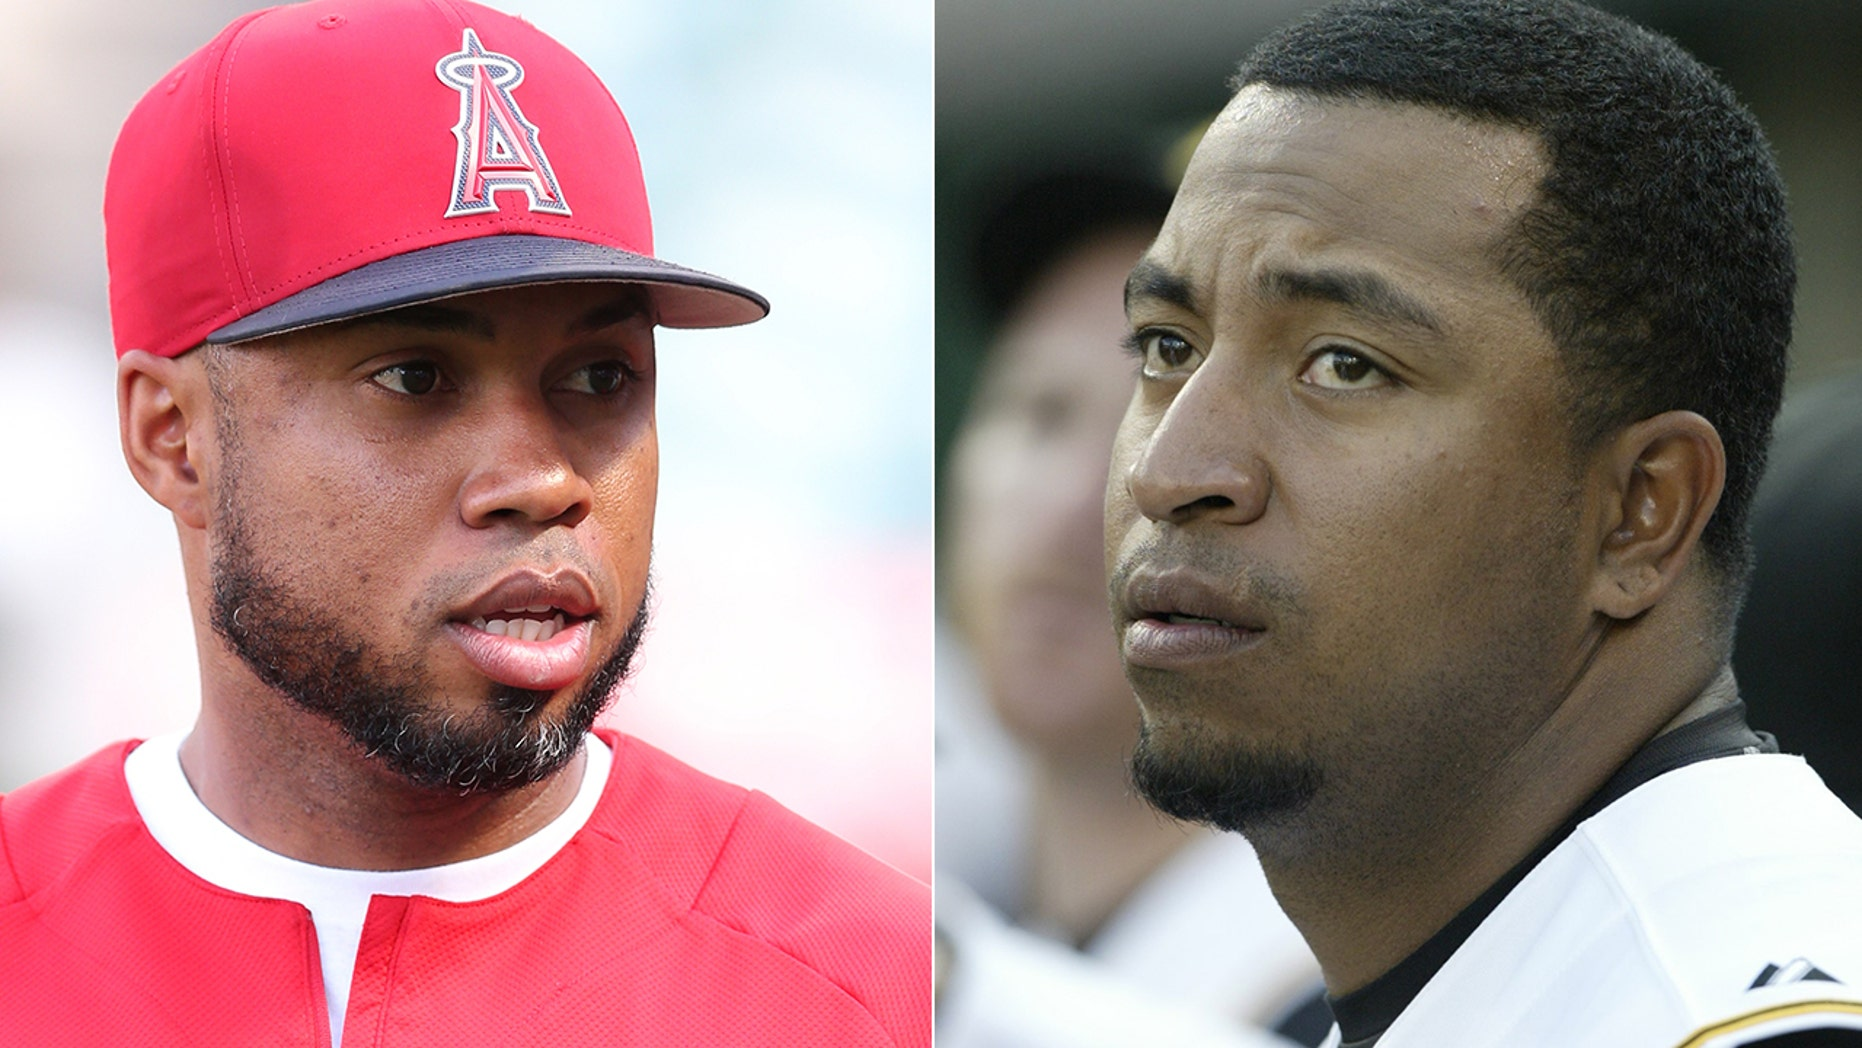 Major League Baseball  players Luis Valbuena, Jose Castillo killed in vehicle  crash